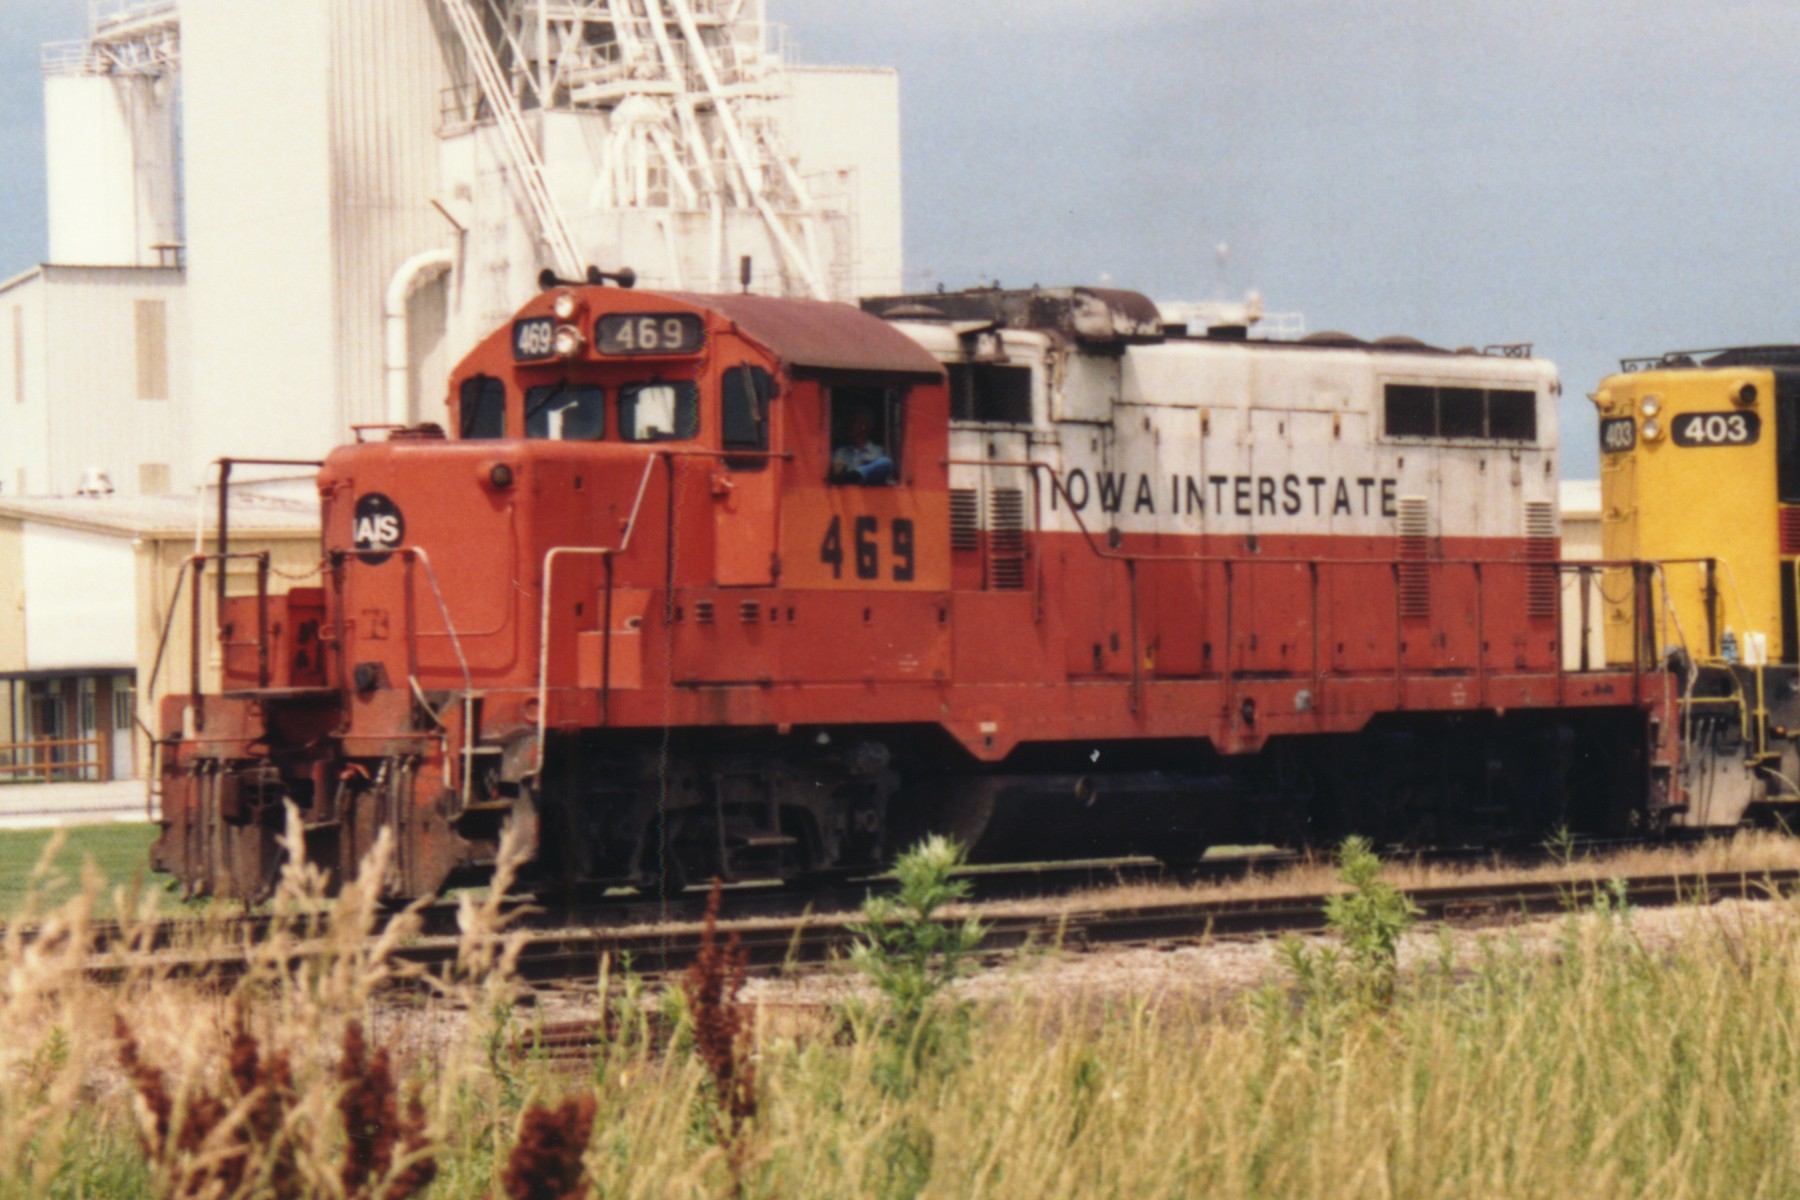 IAIS 469 at Altoona, IA on 01-Jul-1993